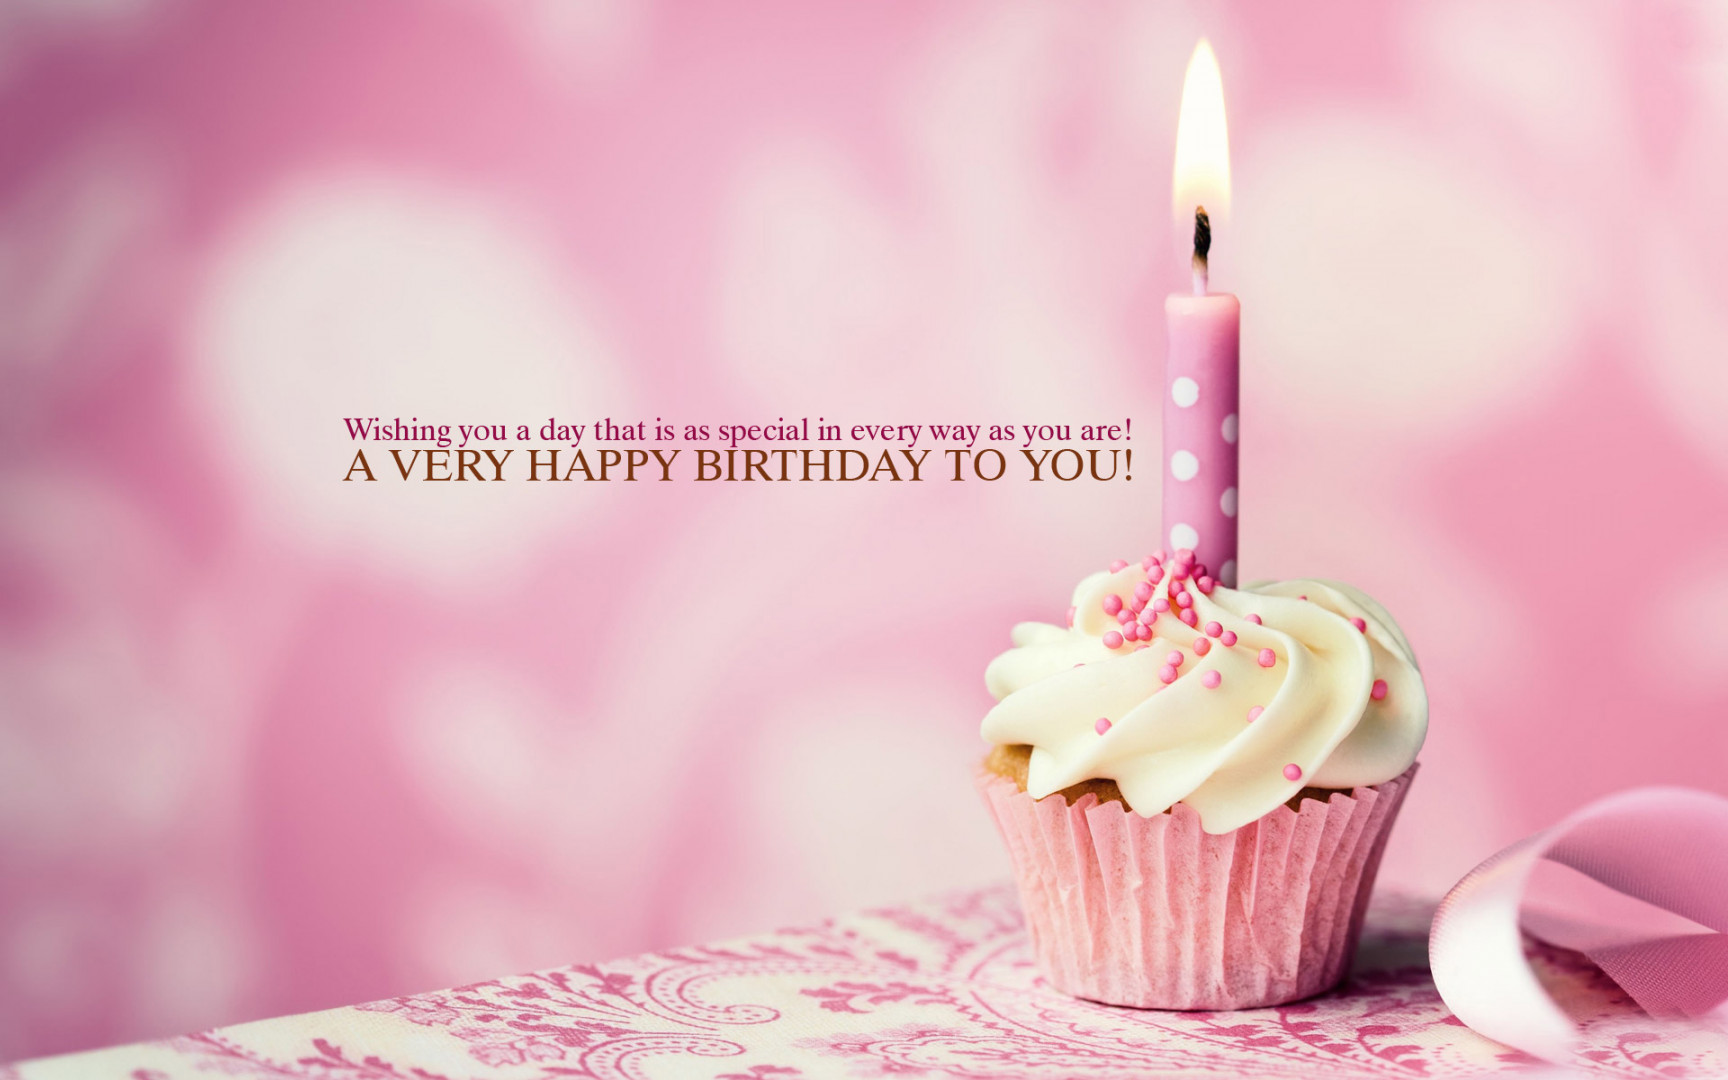 birthday picture messages free download ; new-free-happy-birthday-messages-%25E2%2580%2593-best-birthday-messages-of-happy-birthday-wishes-for-friend-images